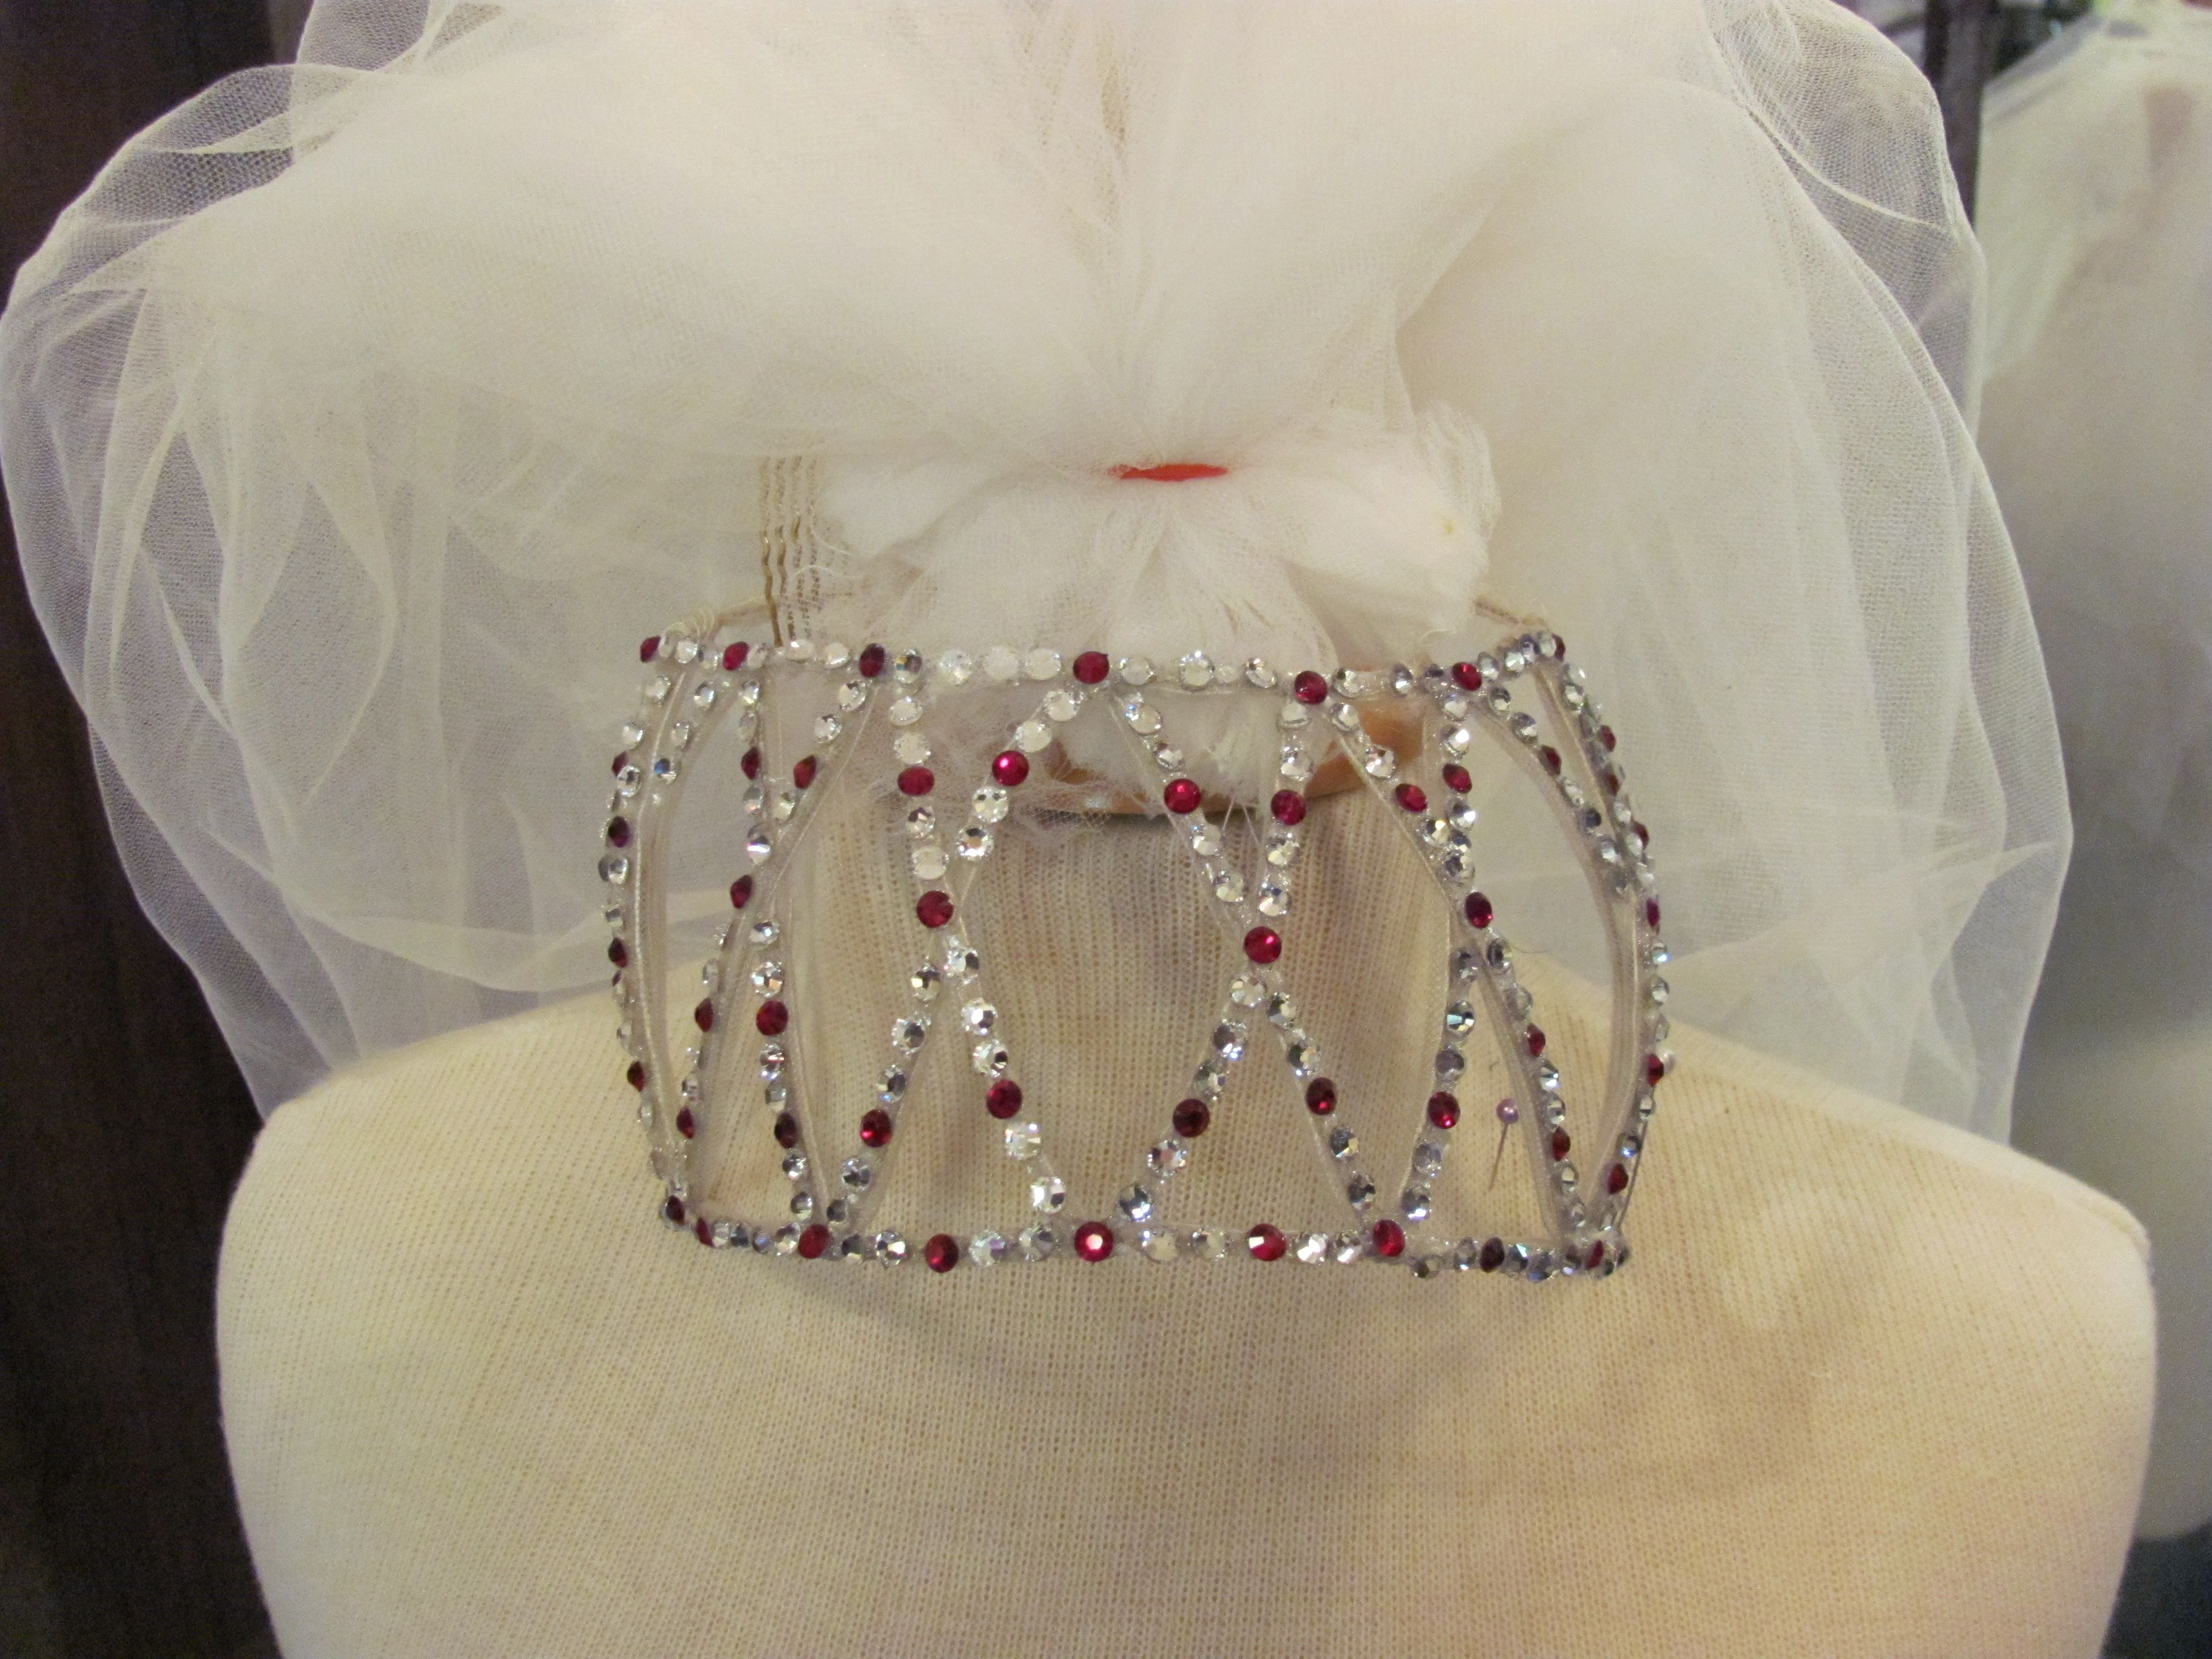 This is the family heirloom headpiece we updated and made more